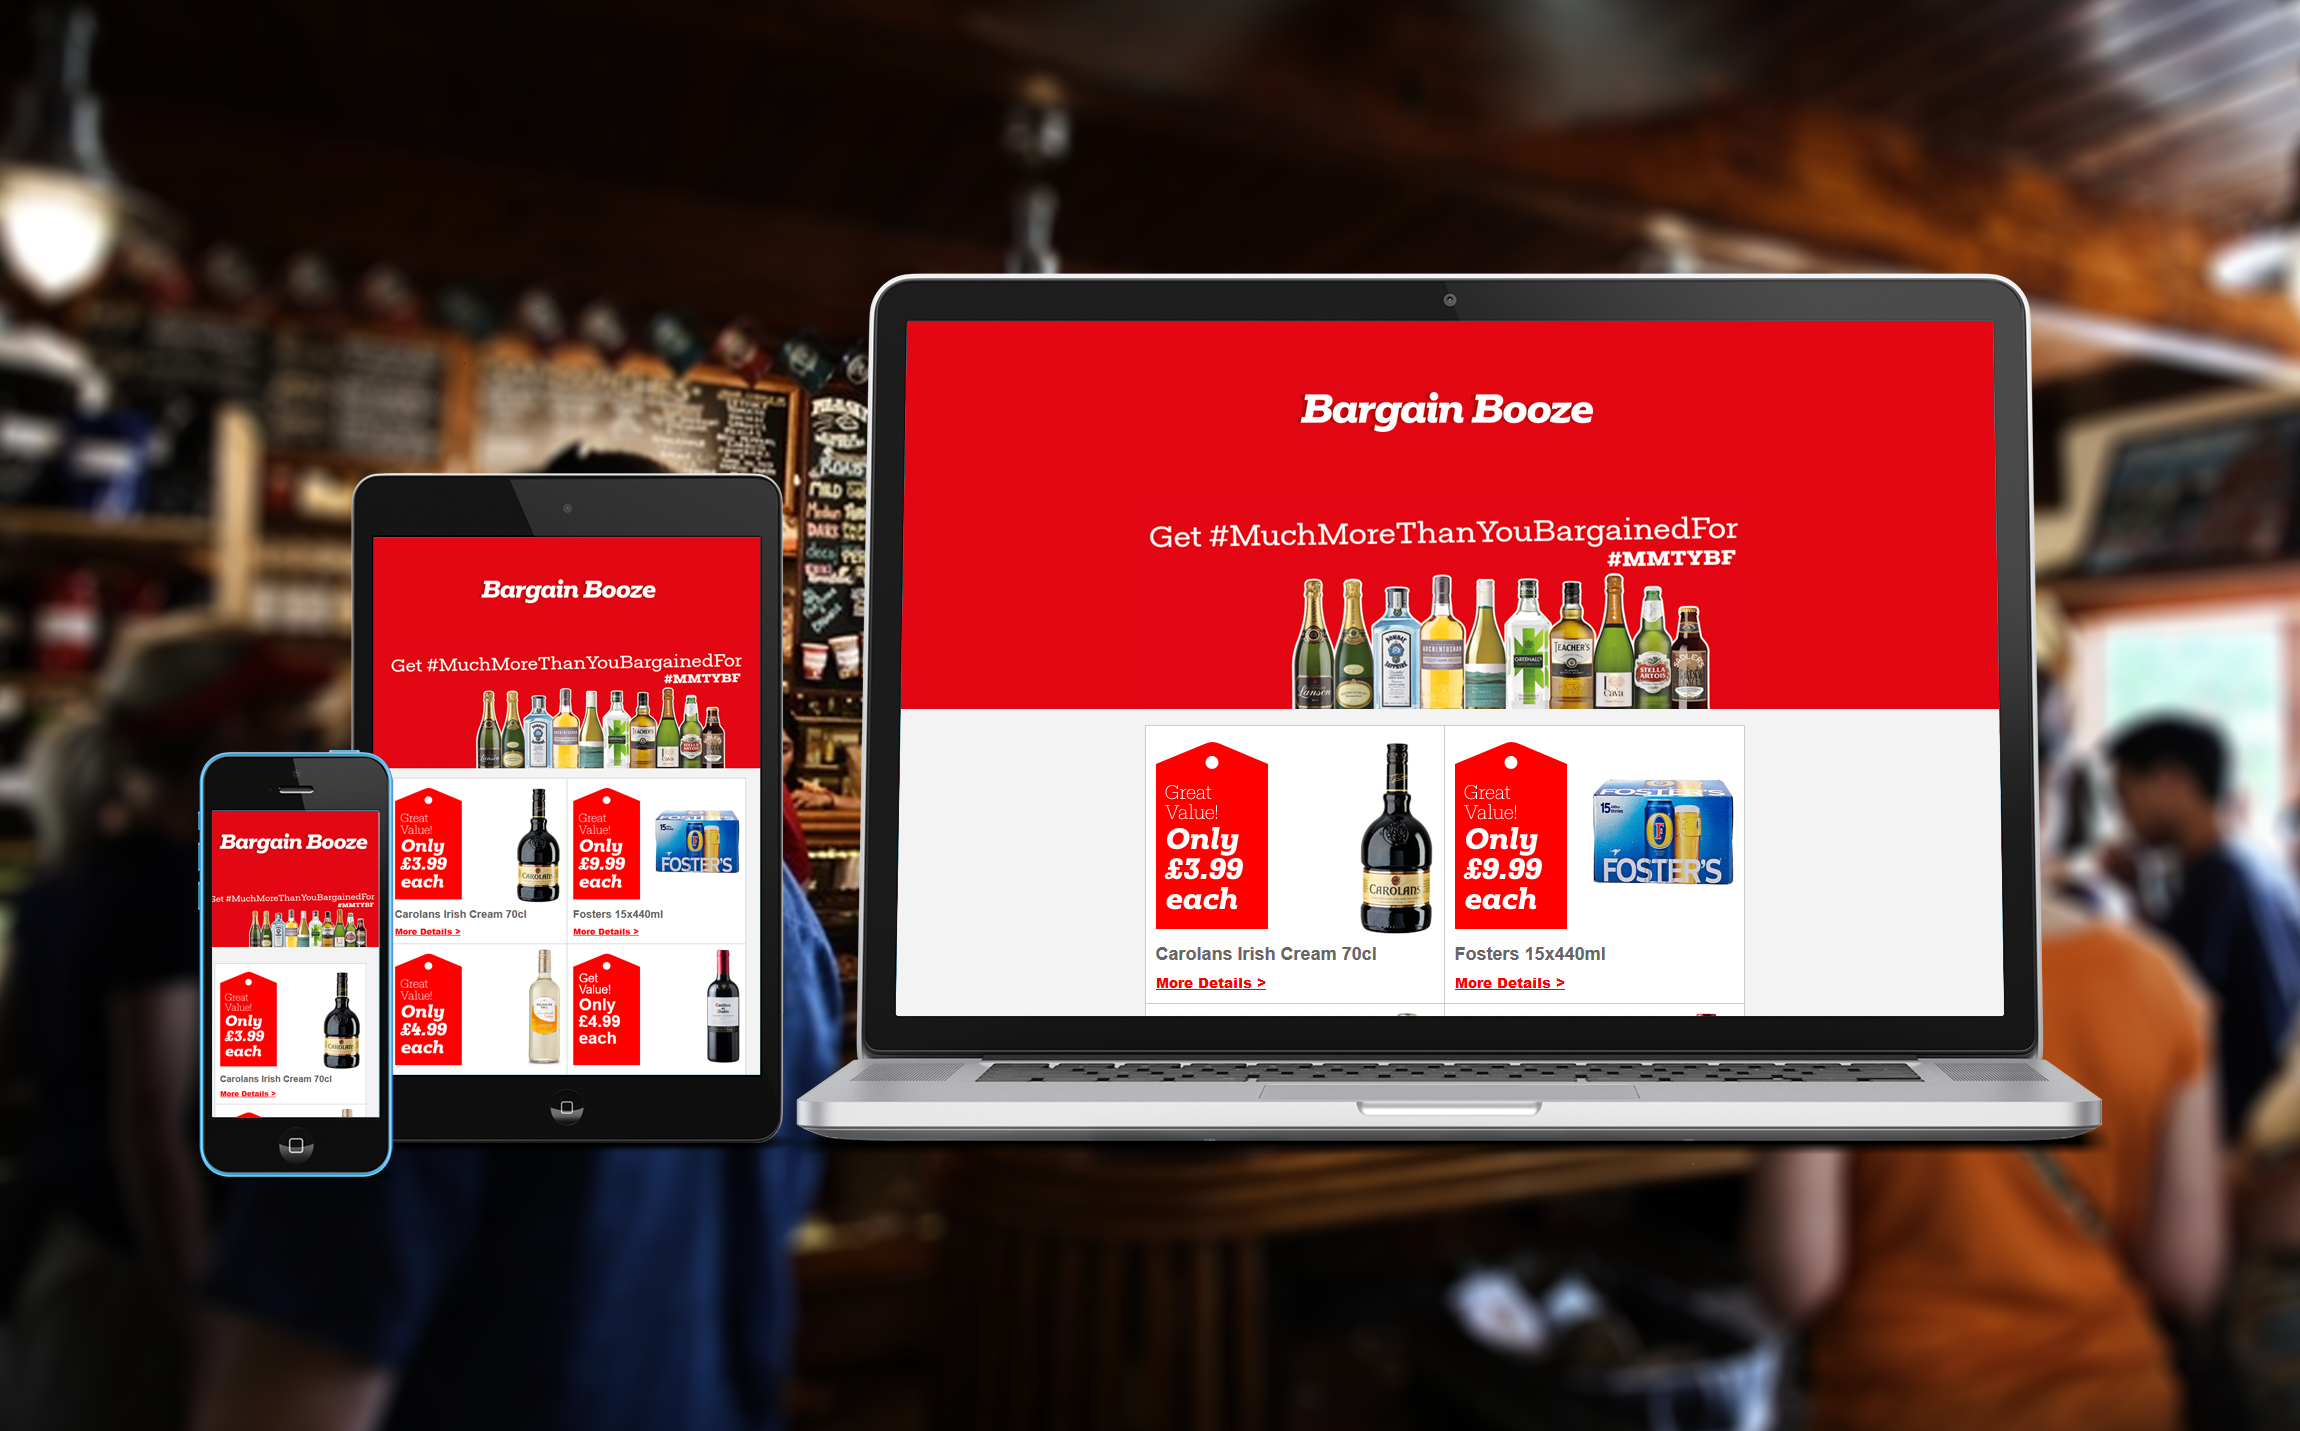 Bargain Booze mobile, tablet, and laptop rendering